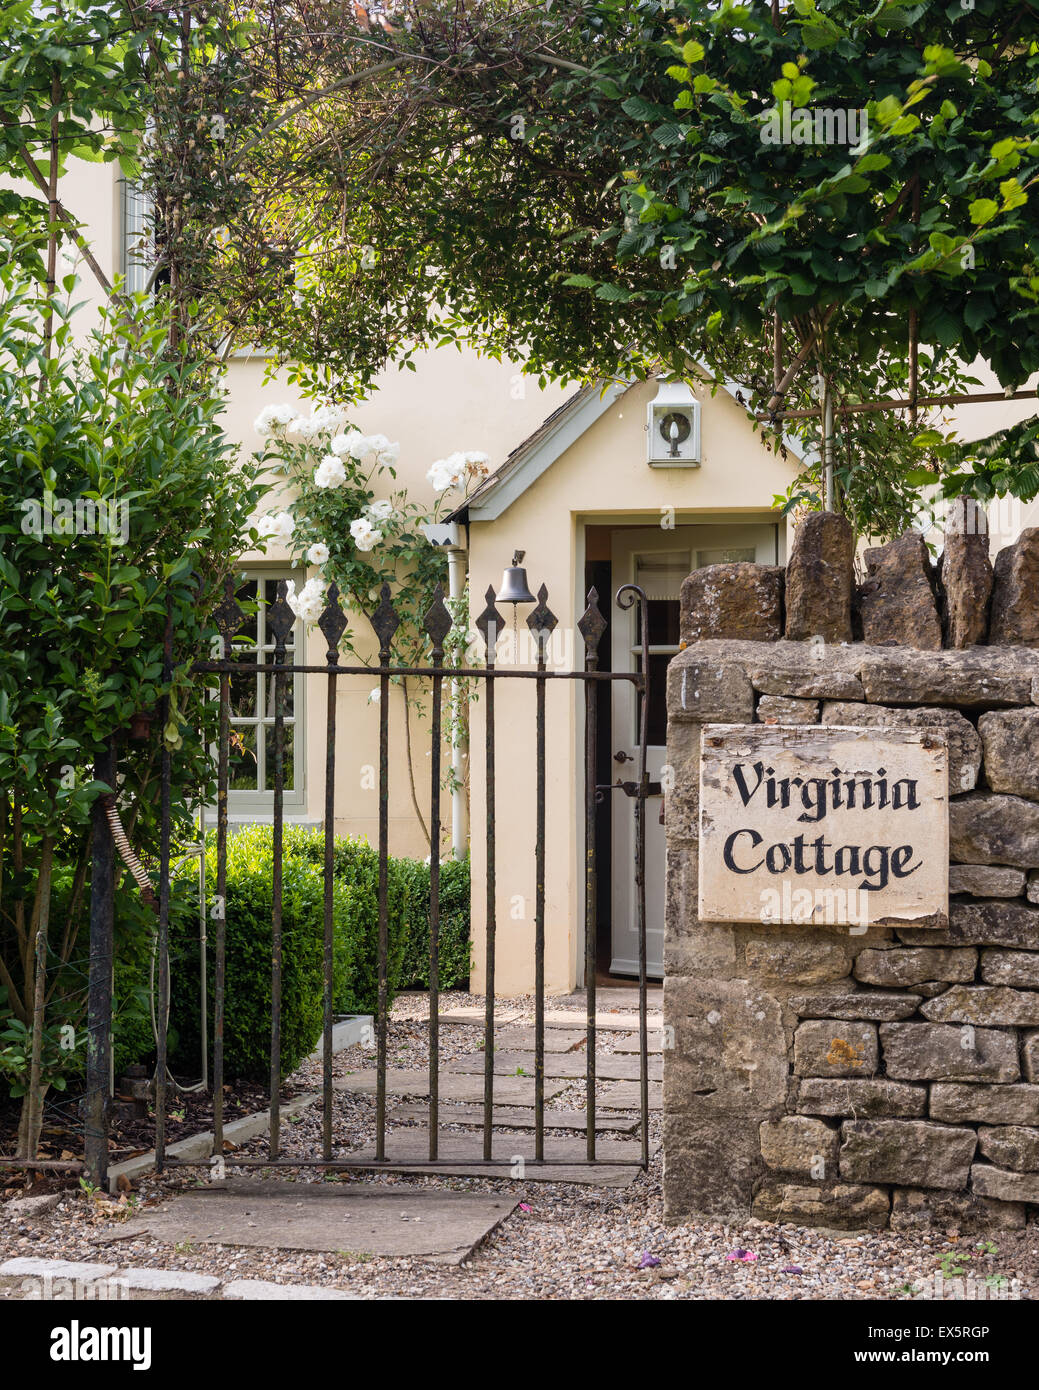 Wrought iron gate entrance to English country cottage - Stock Image